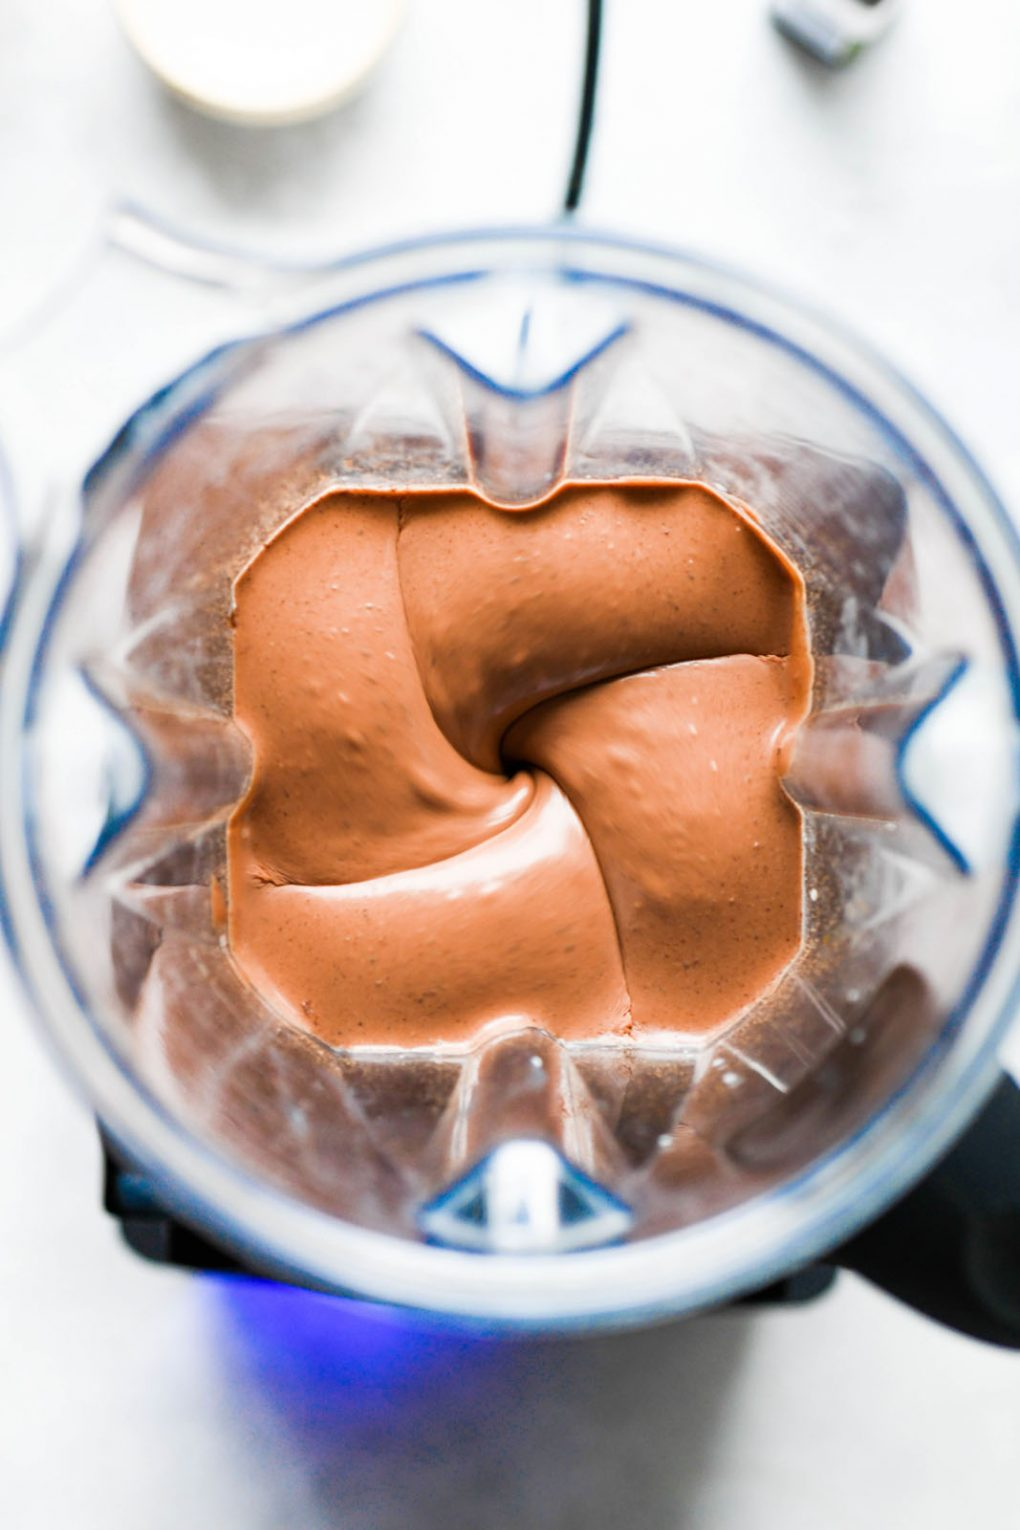 Overhead view of vegan chocolate mousse whirring in a blender.